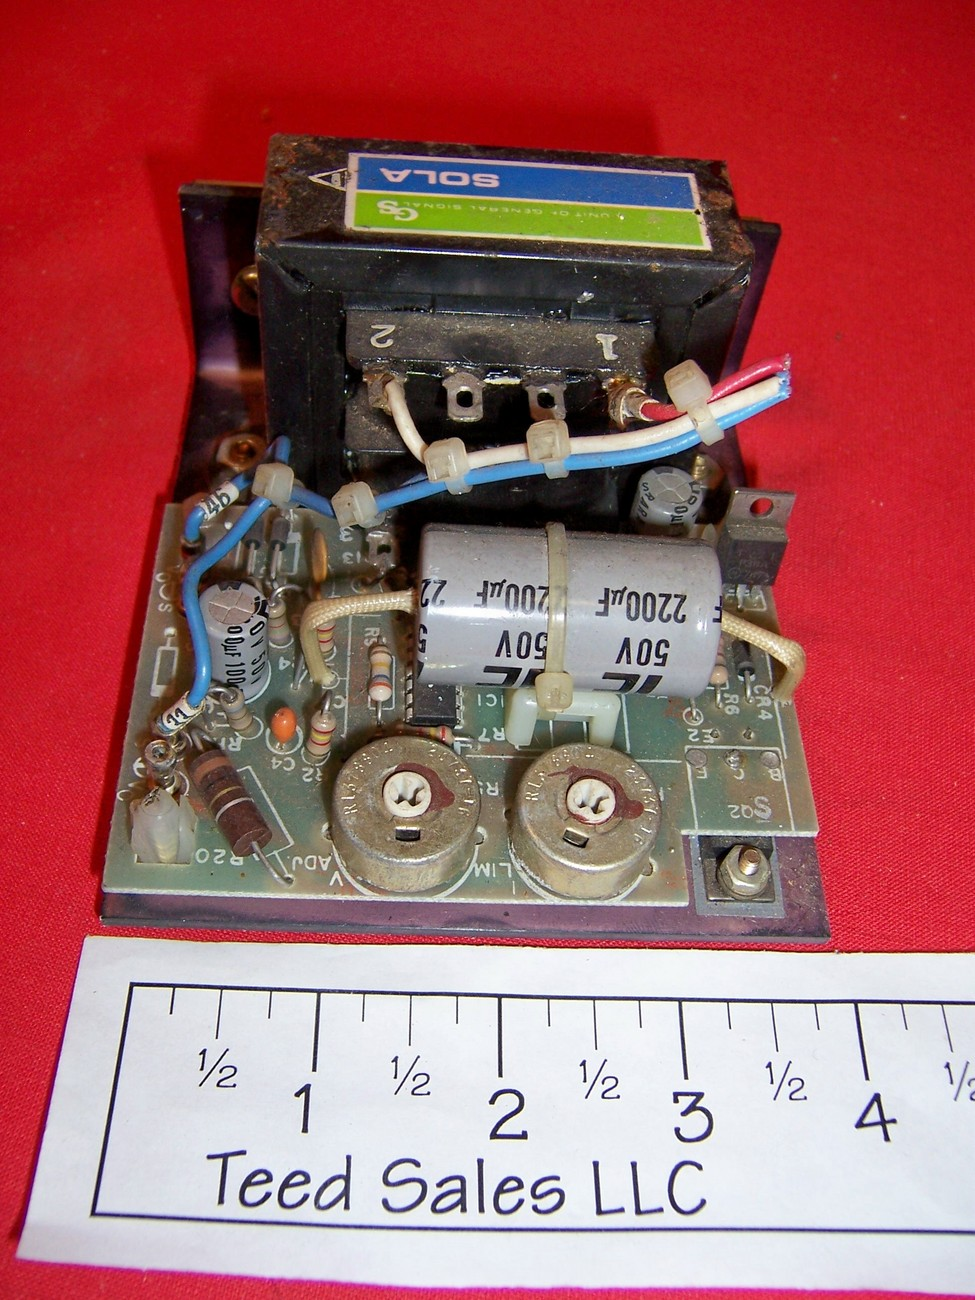 Sola 81-24-180-01 Power Supply used 24 volt .8 amp